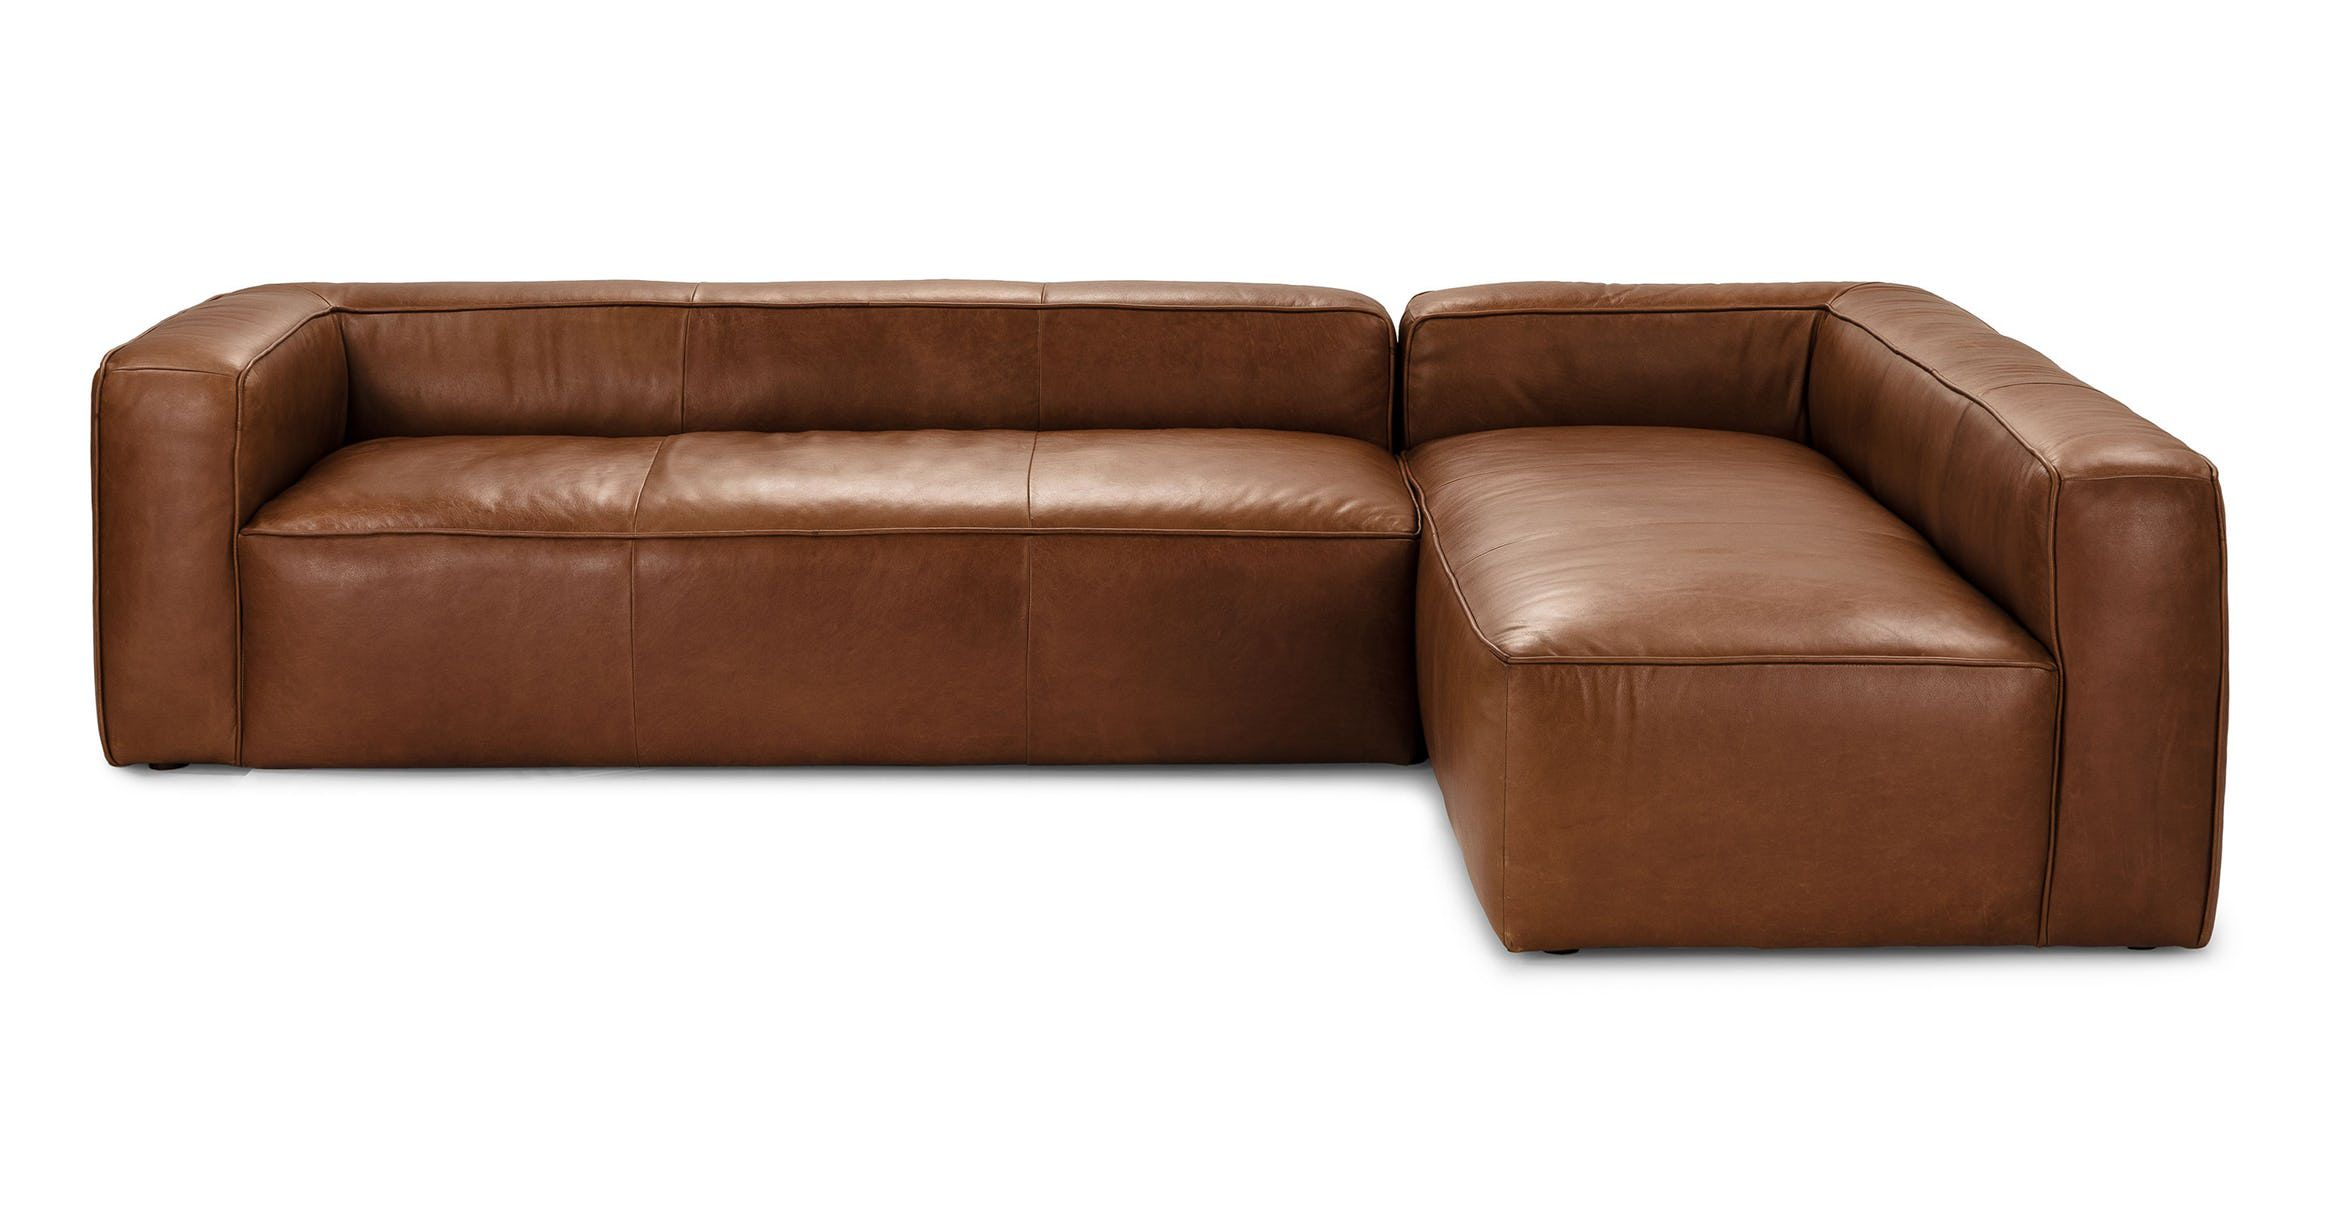 A large modular leather sectional sofa.